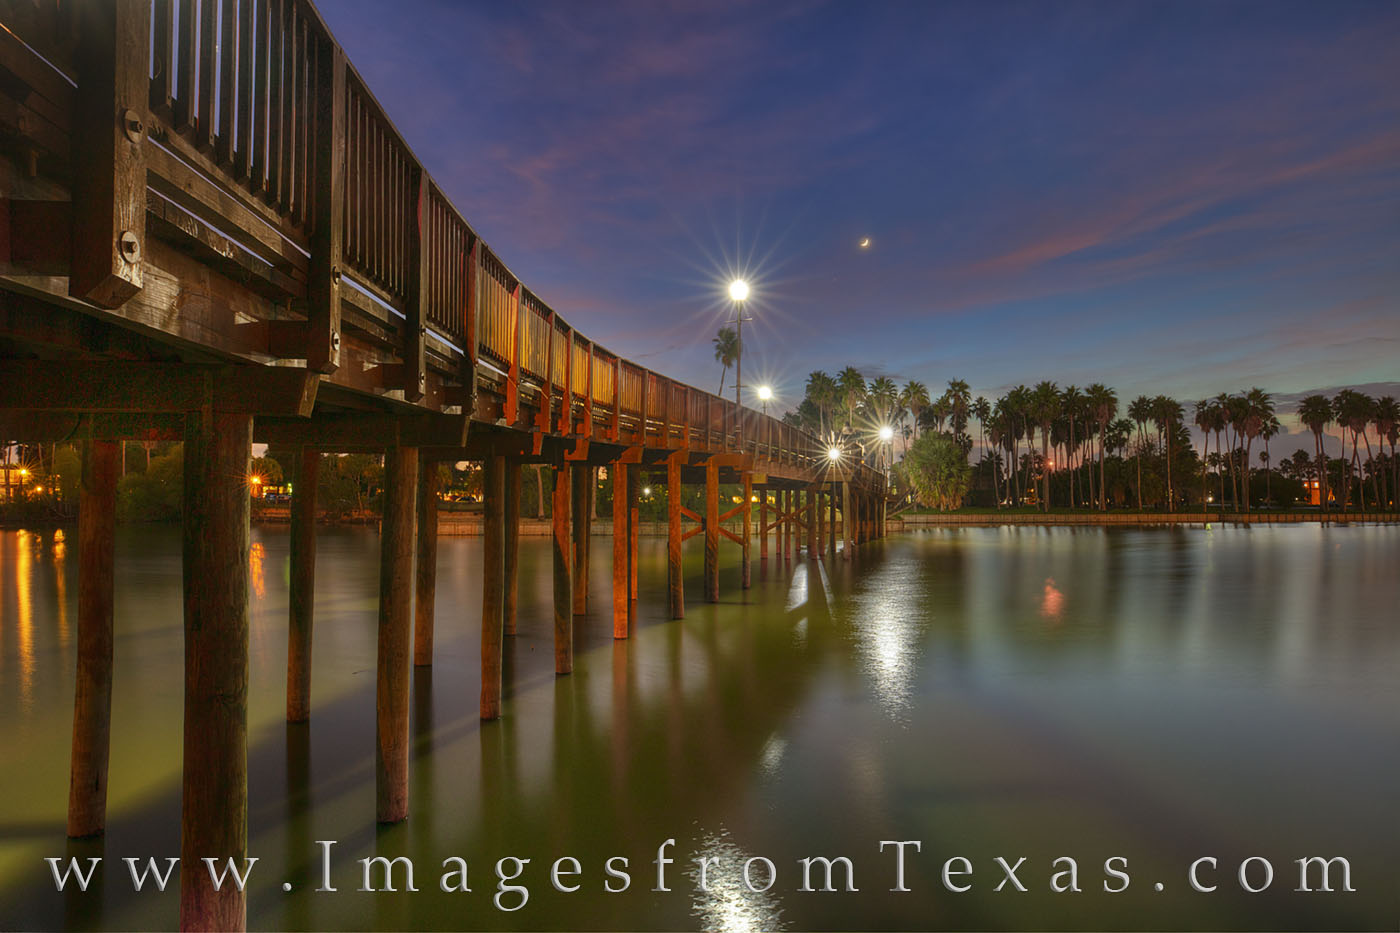 resaca, bridge, brownsville, rio grande, evening, moon, palm trees, night, footbridge, south texas, border town, southmost college